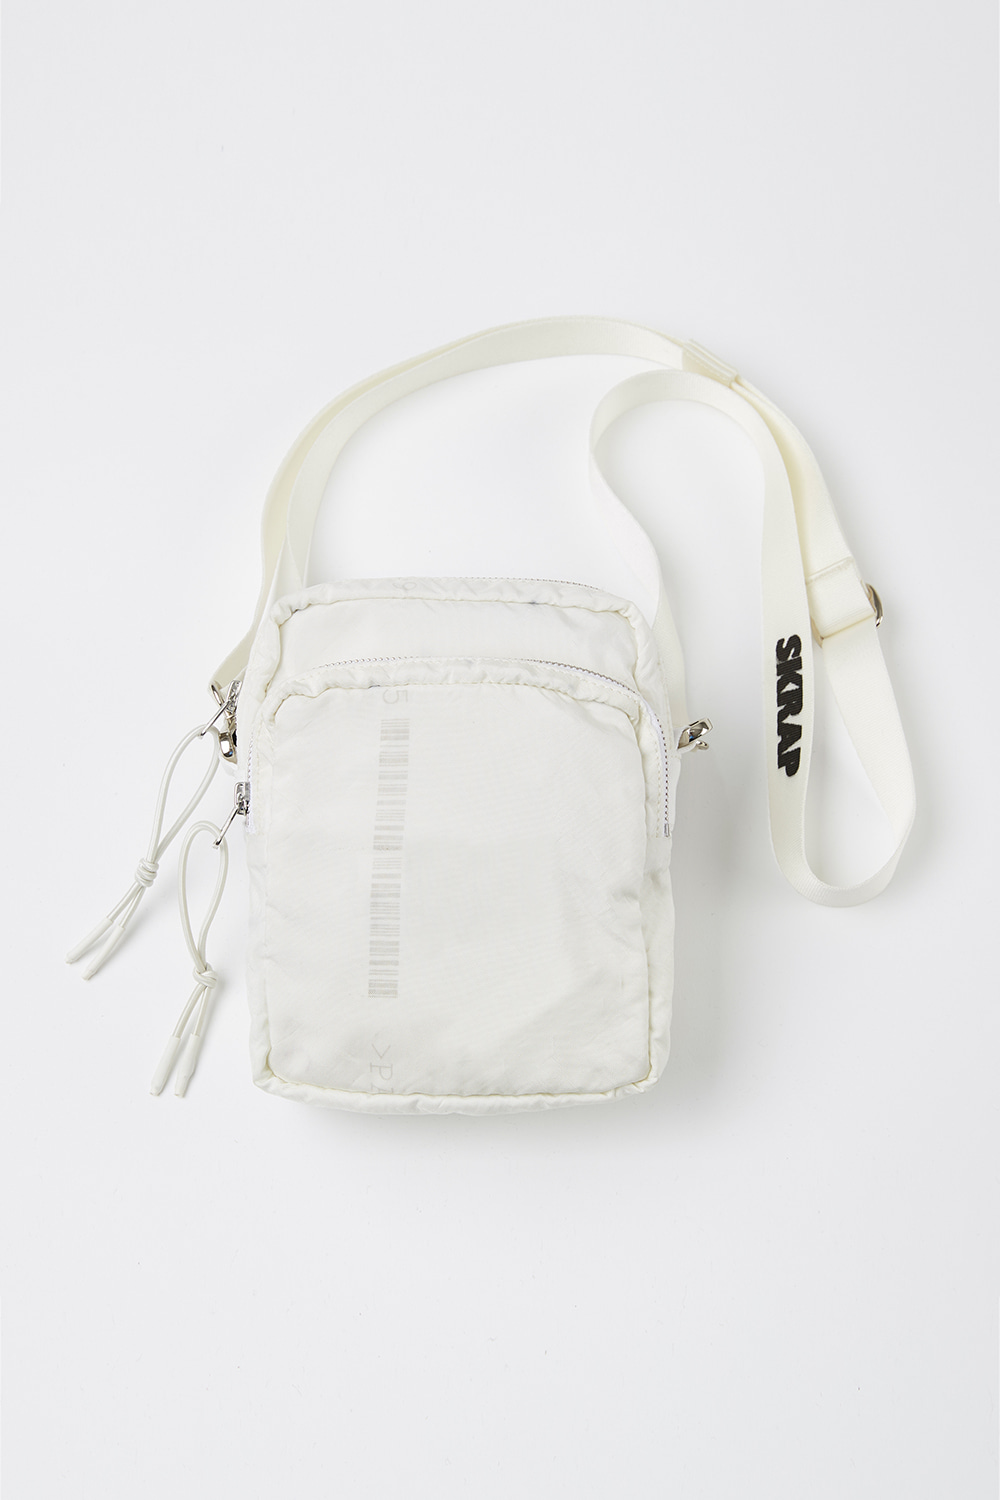 [스크랩] AIR small bag Off white